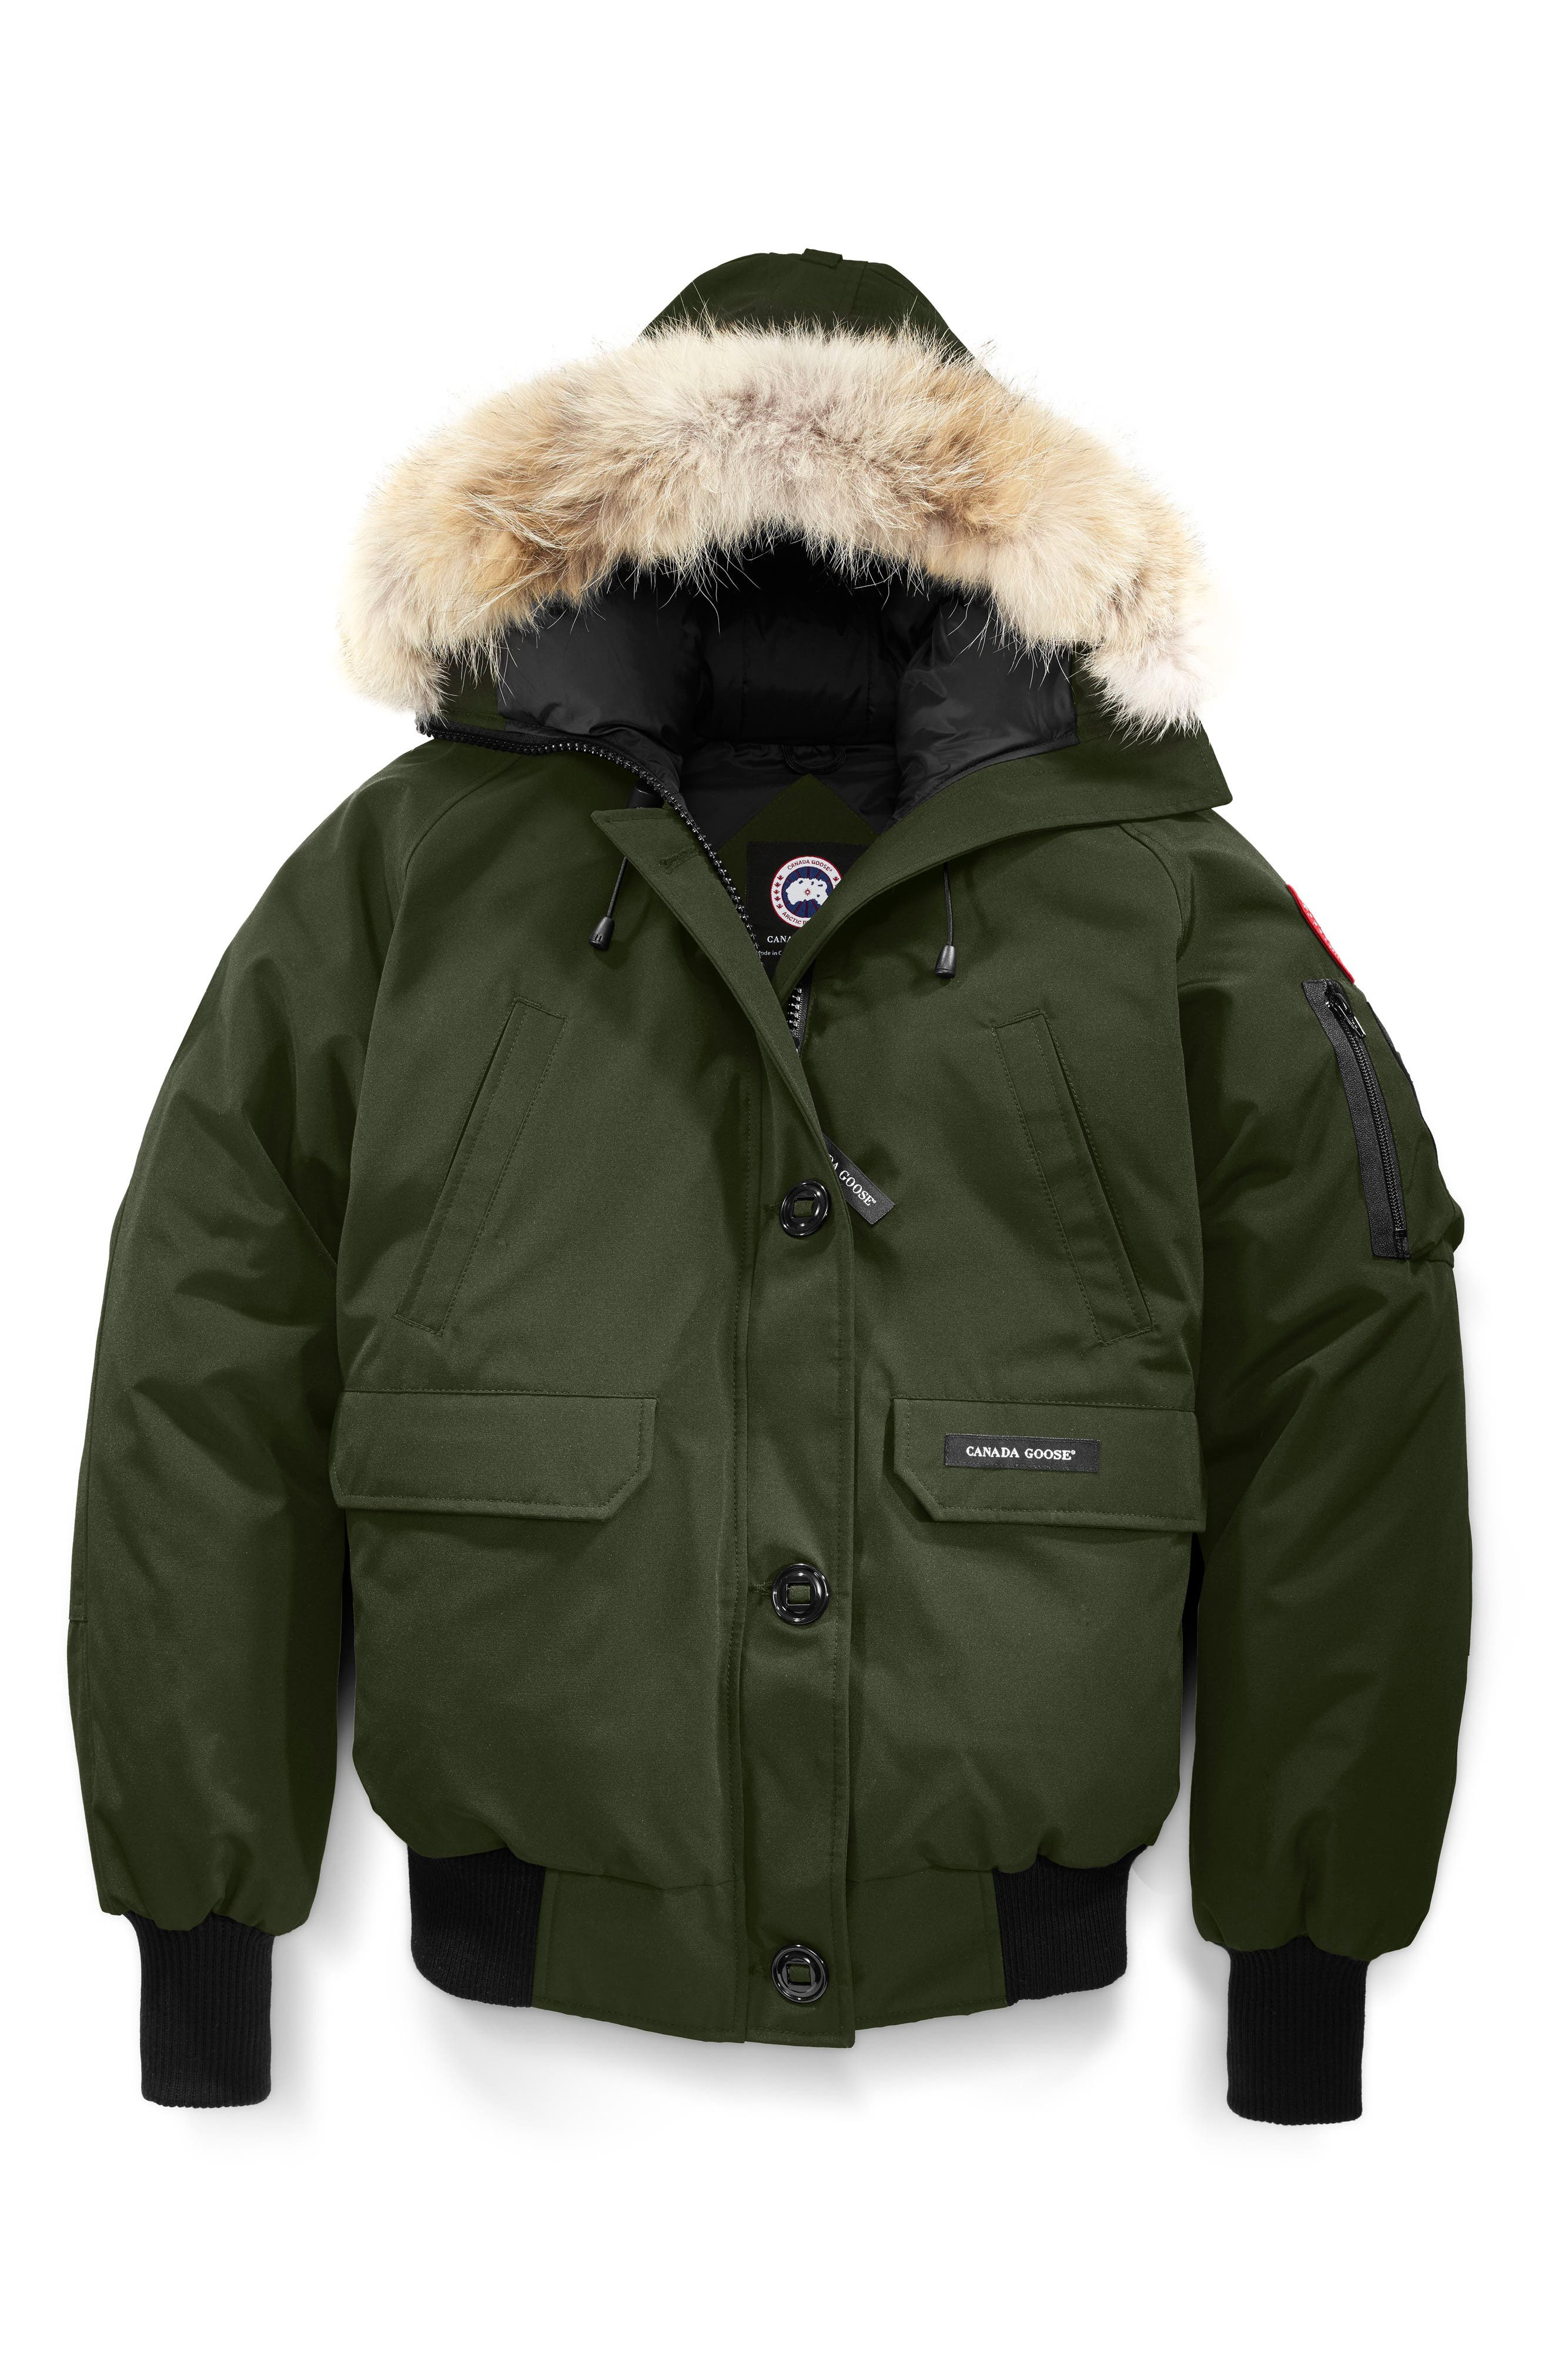 Chilliwack Hooded Down Bomber Jacket with Genuine Coyote Fur Trim,                             Alternate thumbnail 4, color,                             MILITARY GREEN